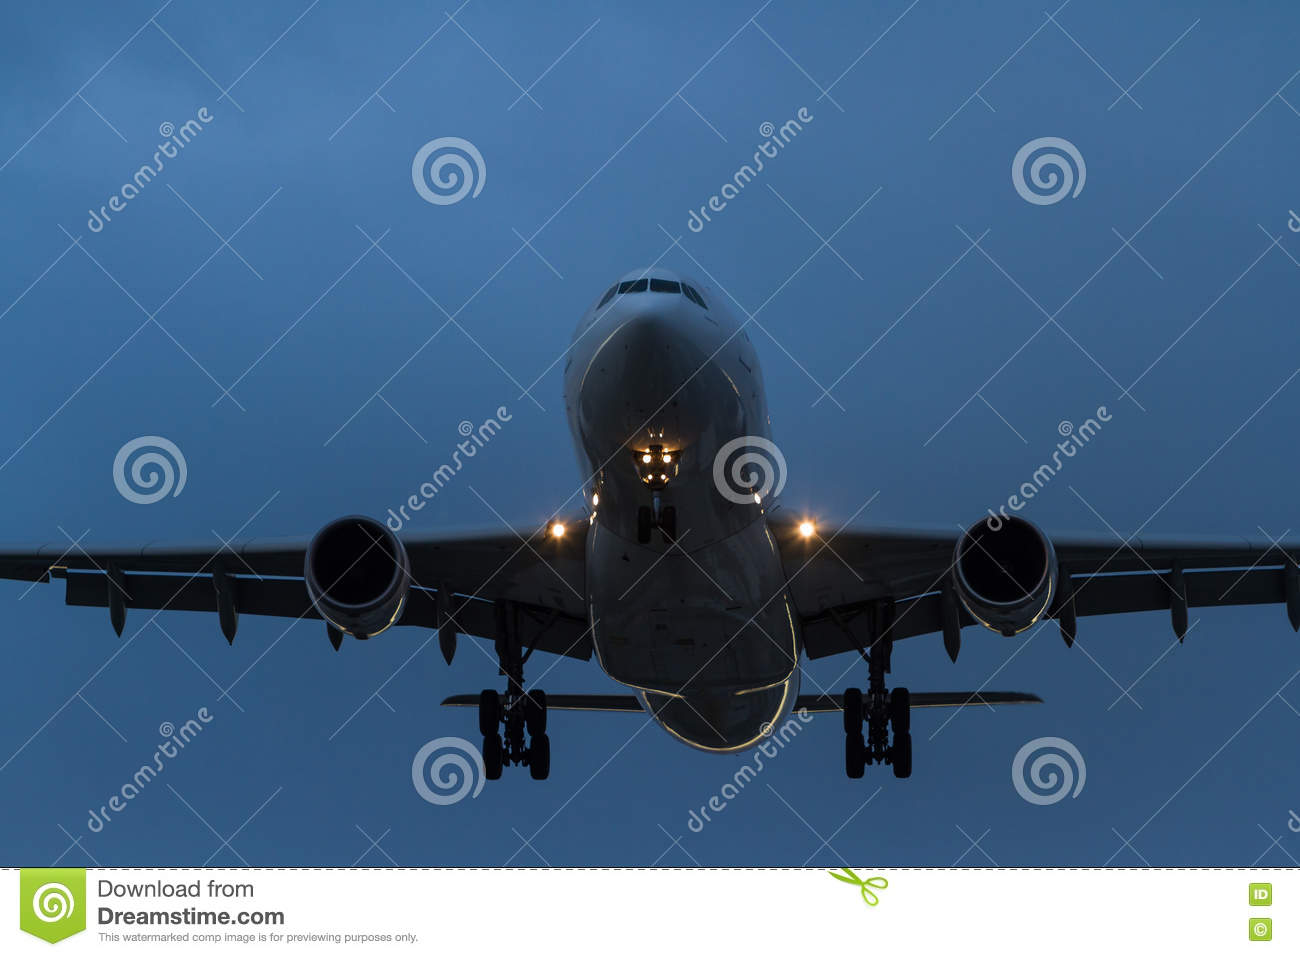 Commercial Jet Airliner In Flight At Night Stock Photo.